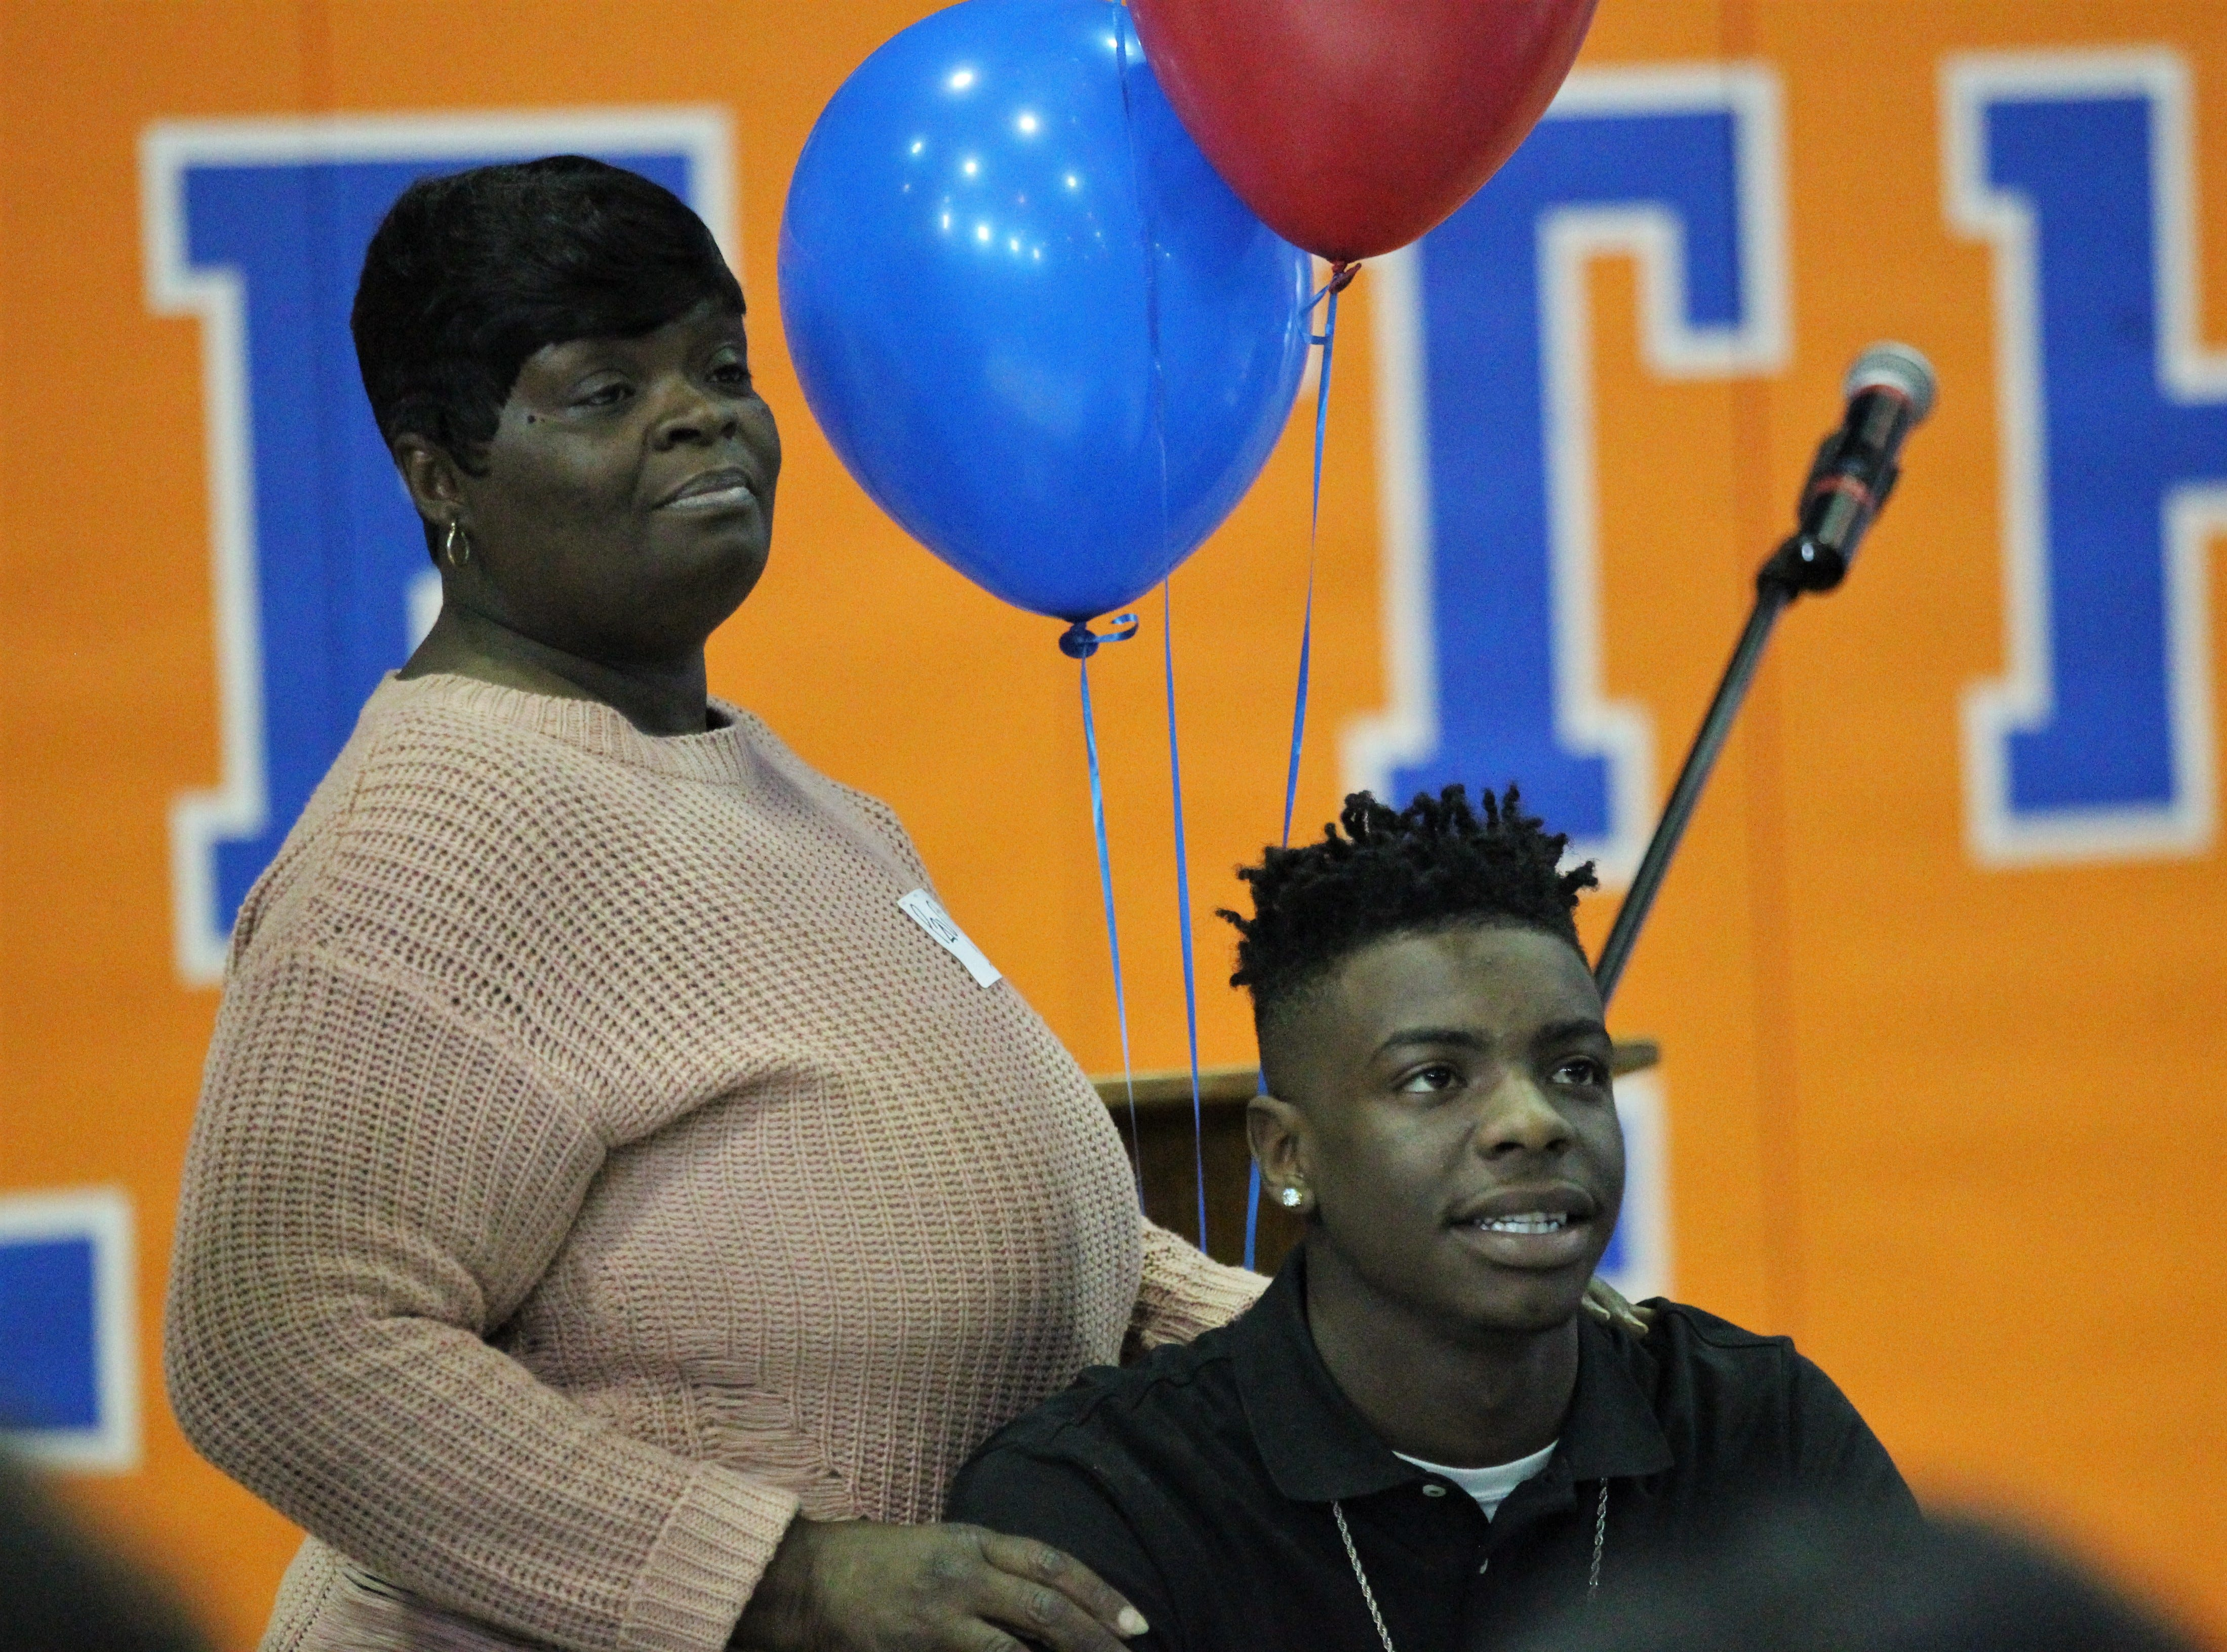 Jefferson County receiver Javion Patrick waits with his mother Liwonda Patrick before Jefferson County's signing day ceremony on Feb. 13, 2019.